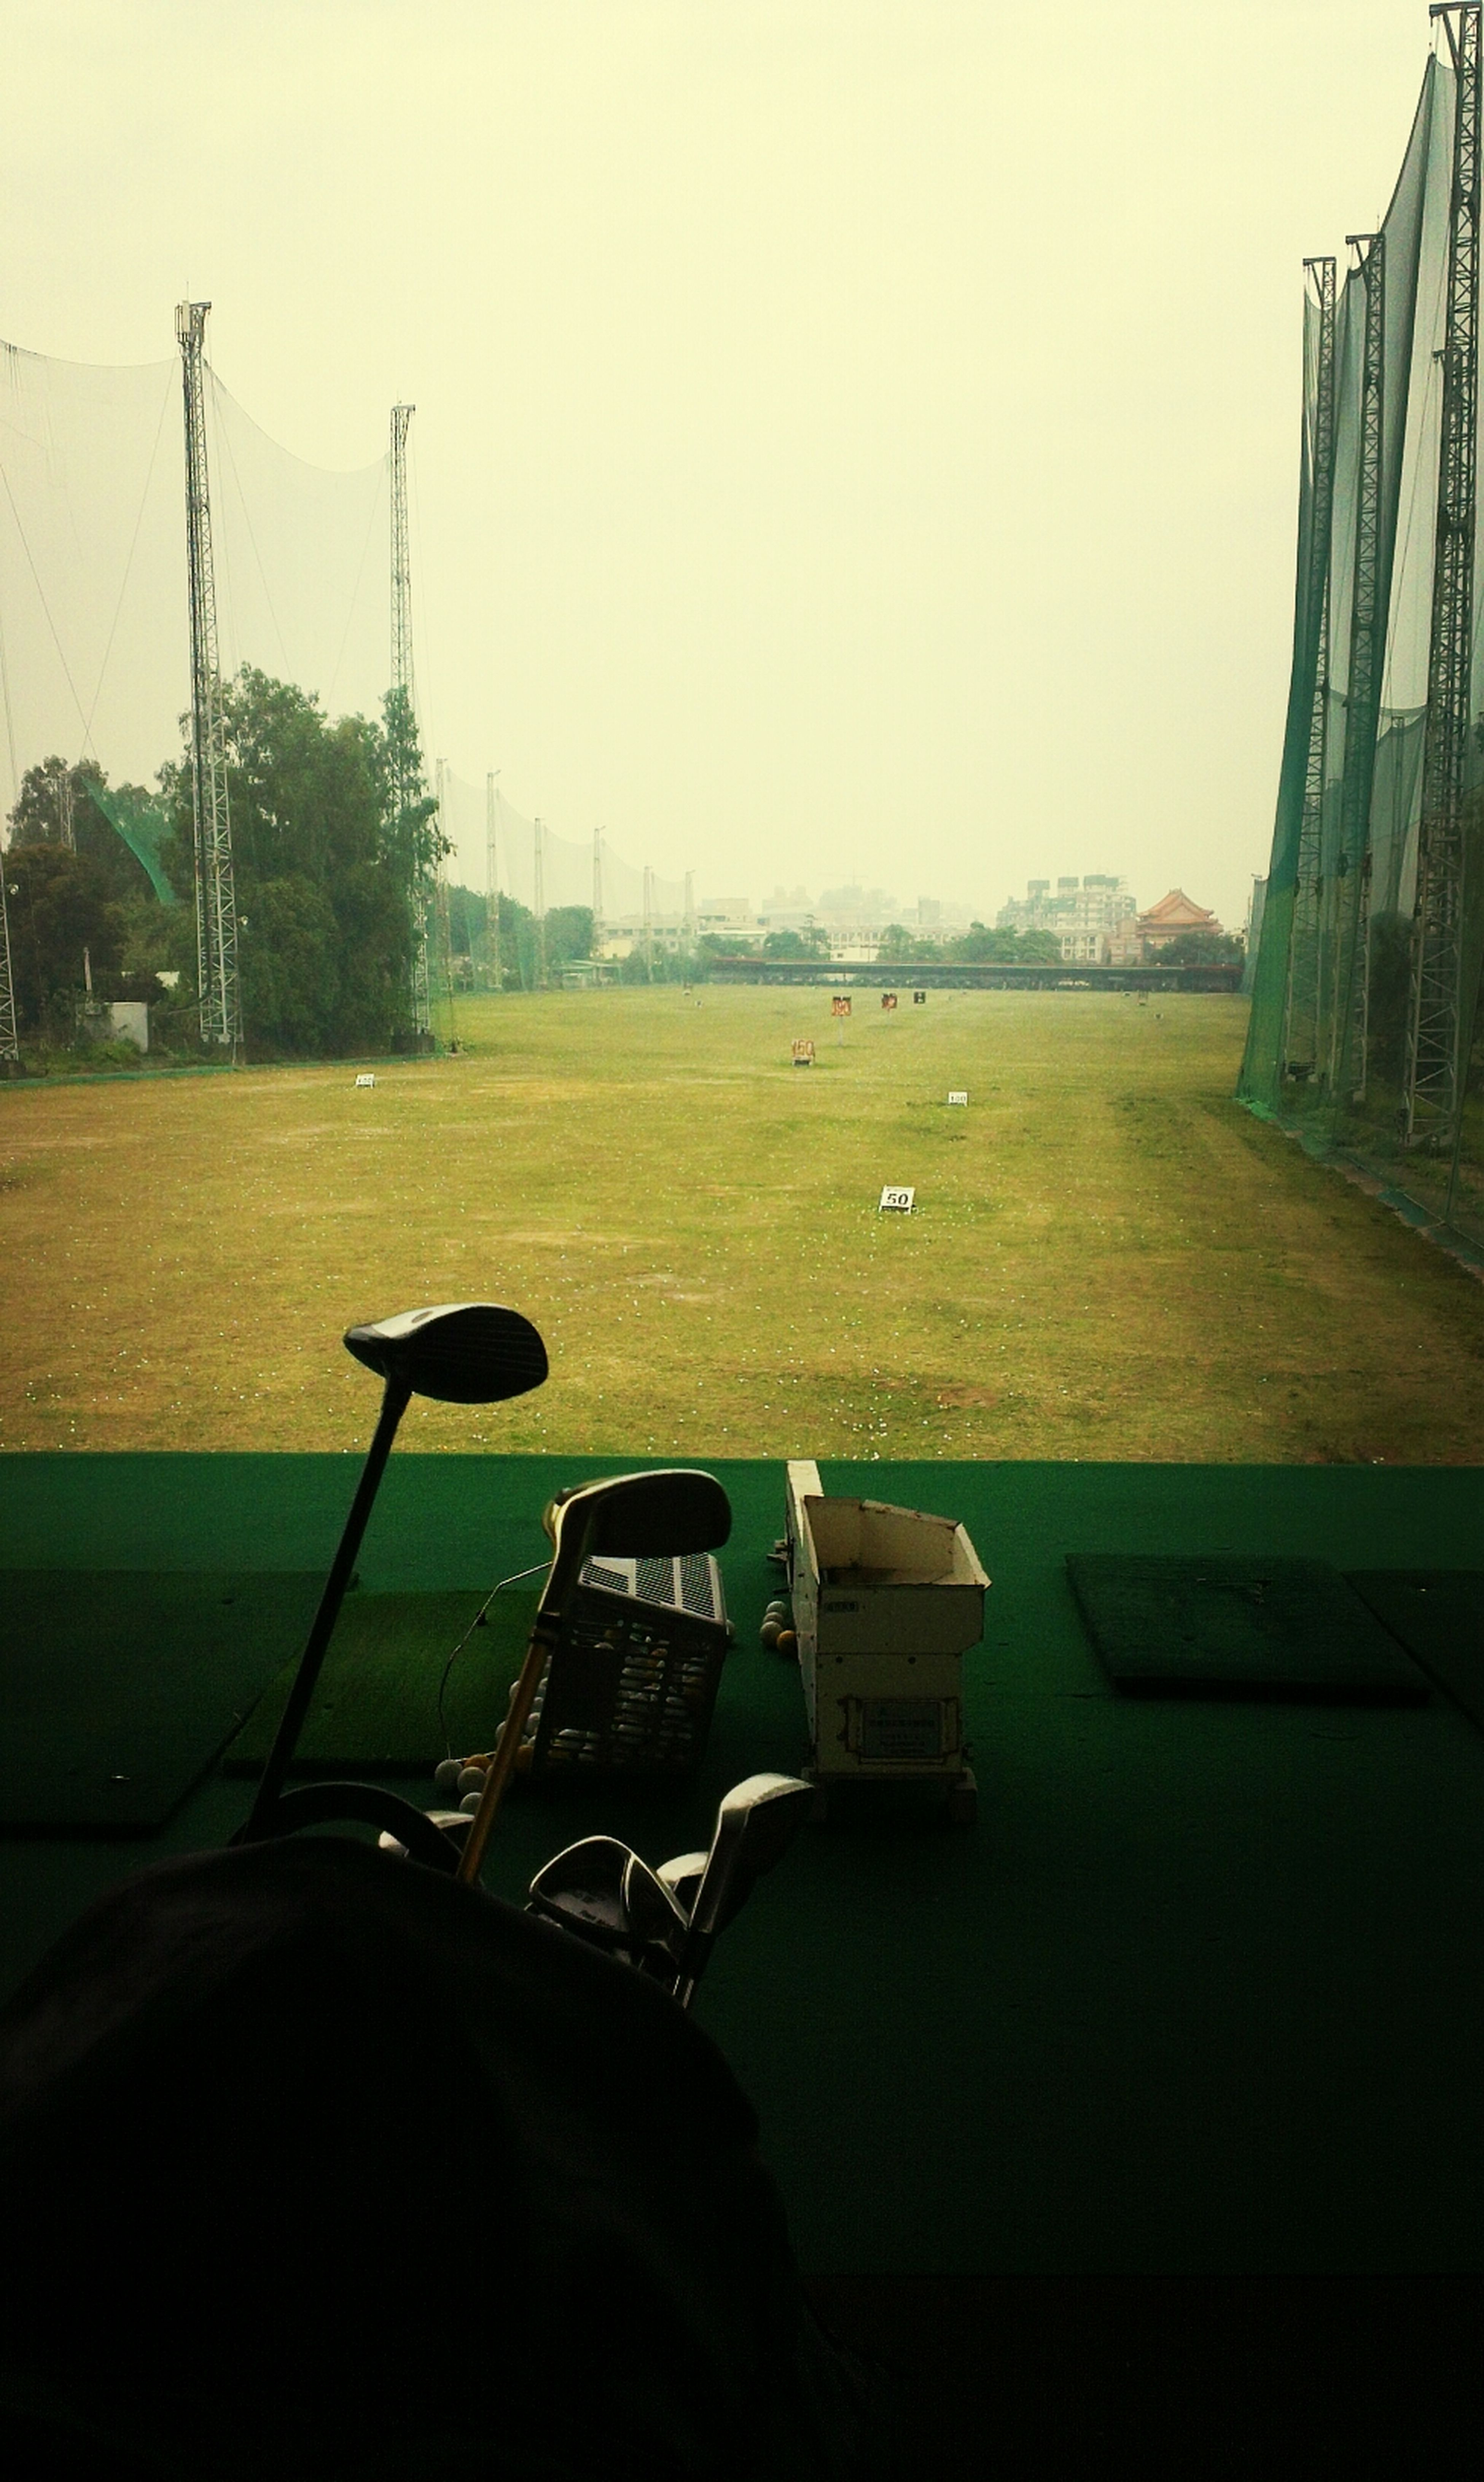 Learn golf ,try something different , challenge my life(: Golfing Being Tiger Woods Joy Enjoying Life